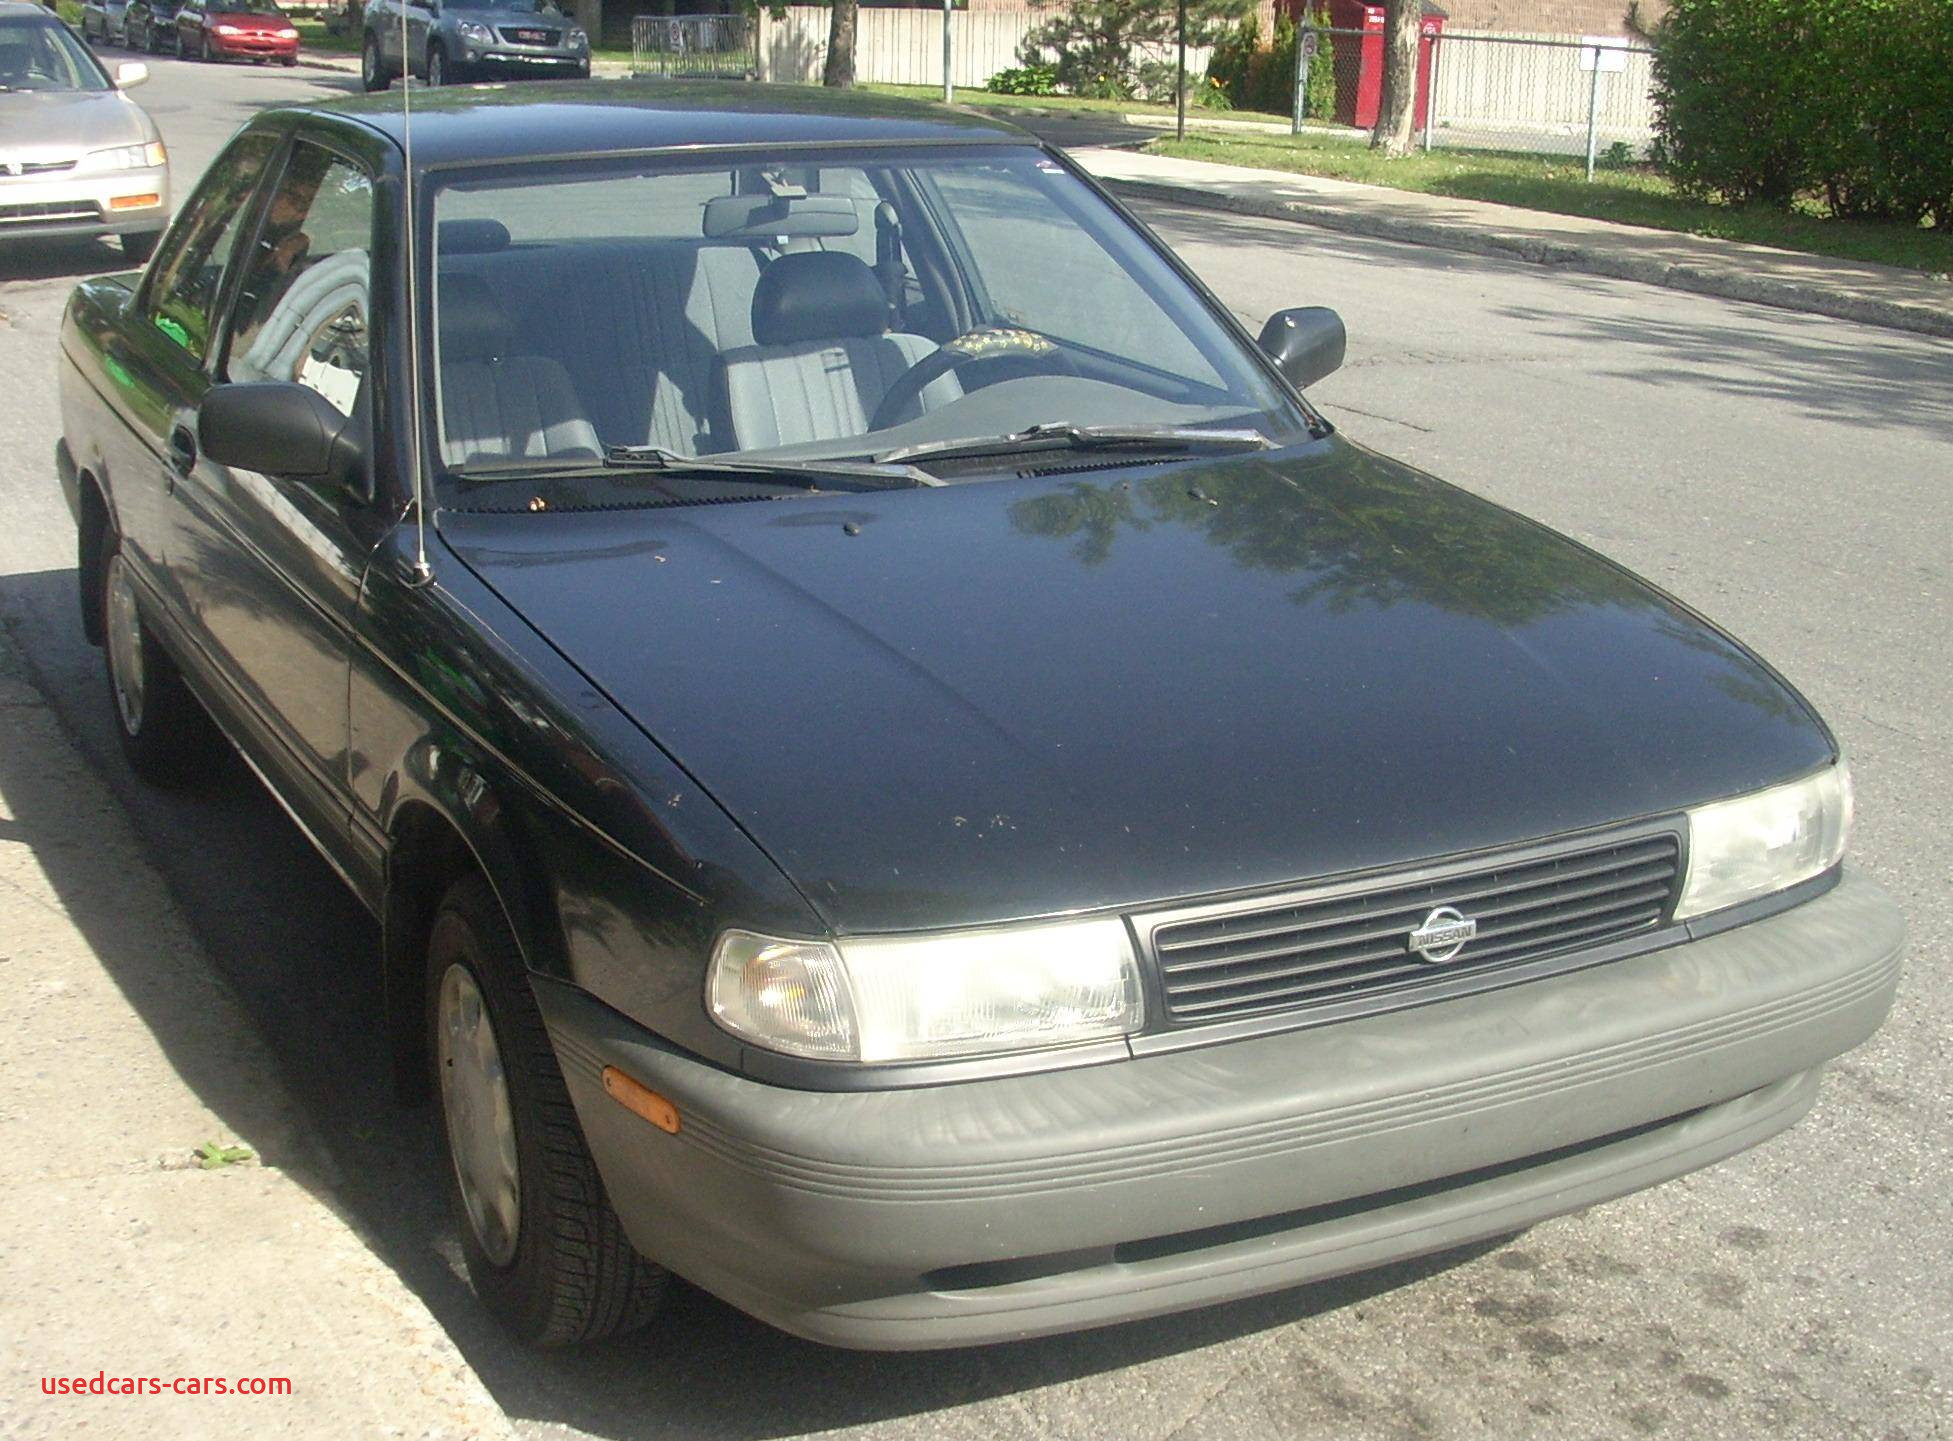 Nissan Sentra 1993 Beautiful 1993 Nissan Sentra Xe 2dr Coupe 5 Spd Manual W Od